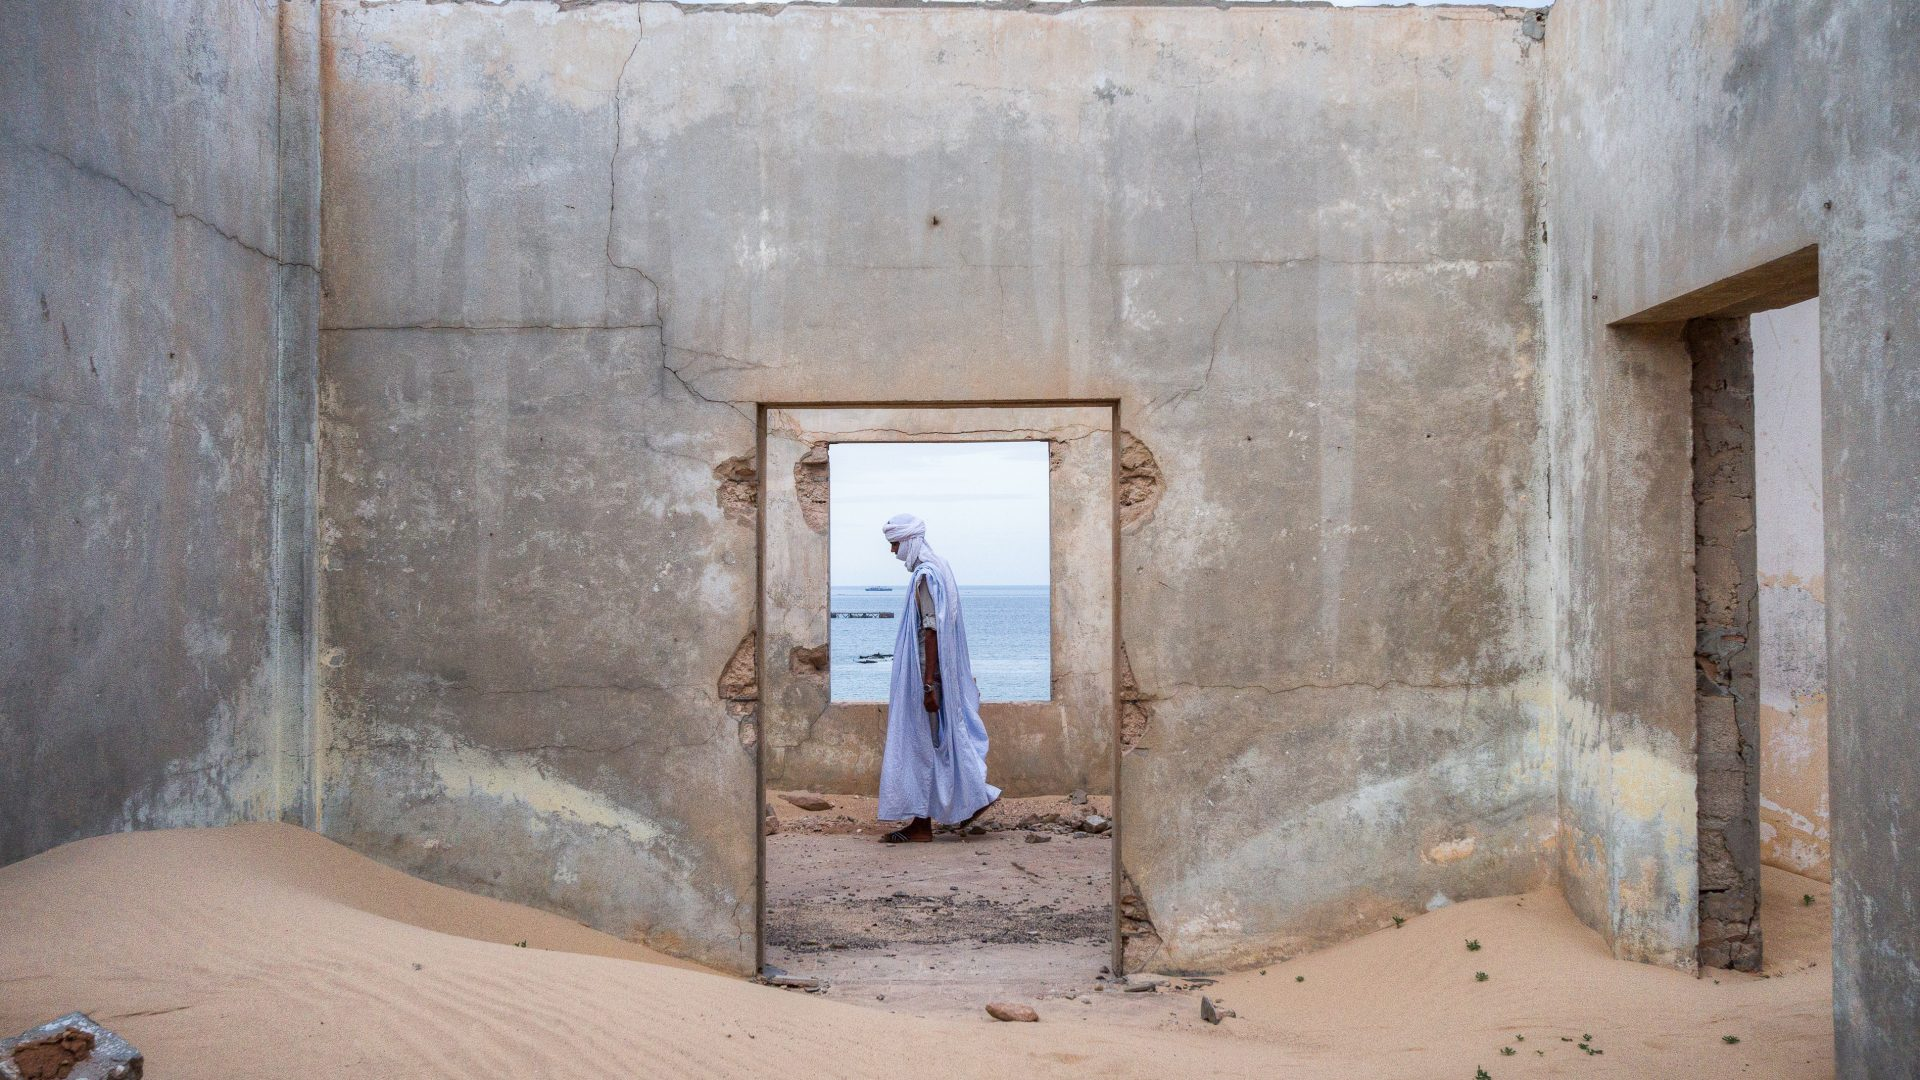 A Mauritanian man walks through one of the many abandoned buildings in the city of Nouadhibou